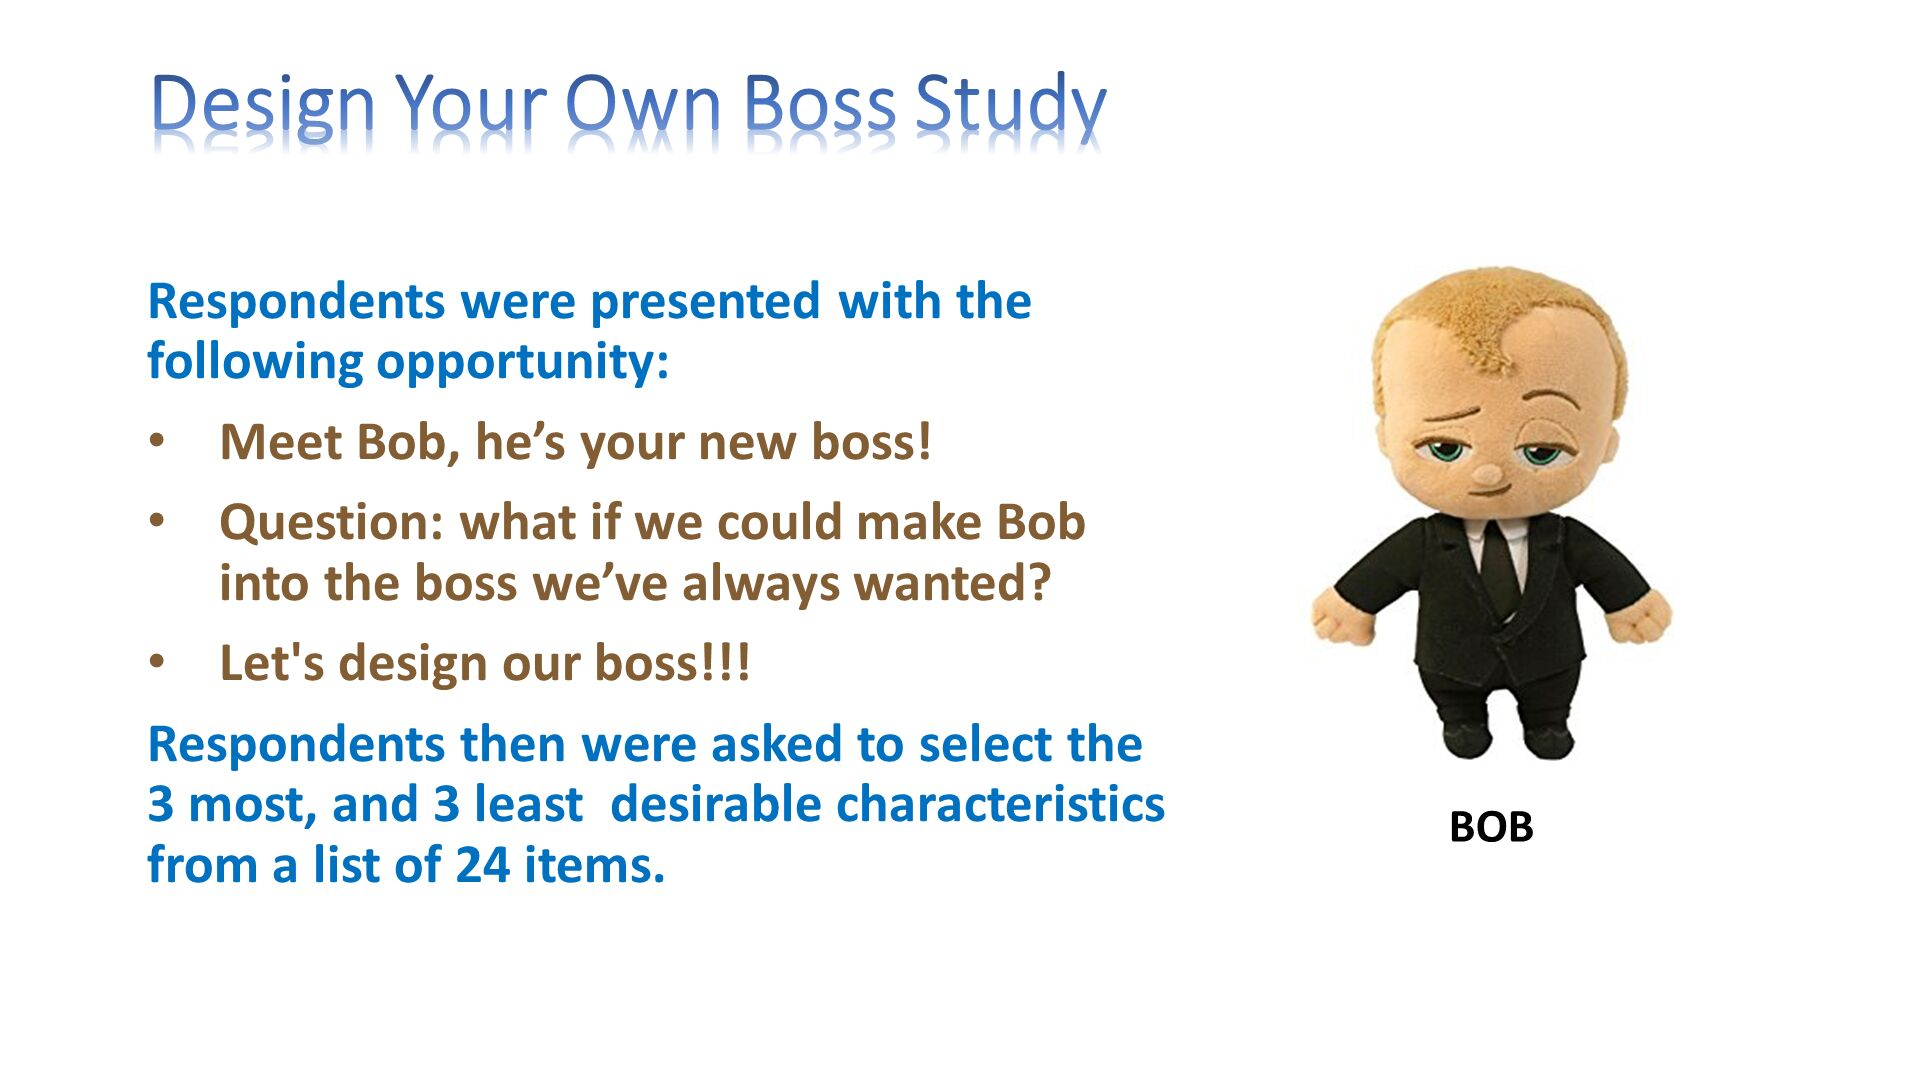 Design Your Own Boss Study. Respondents were presented with the following opportunity: Meet Bob, he's your new boss! Question: what if we could make Bob into the boss we've always wanted? Let's design our boss!!! Respondents then were asked to select the 3 most, and 3 least  desirable characteristics from a list of 24 items. .